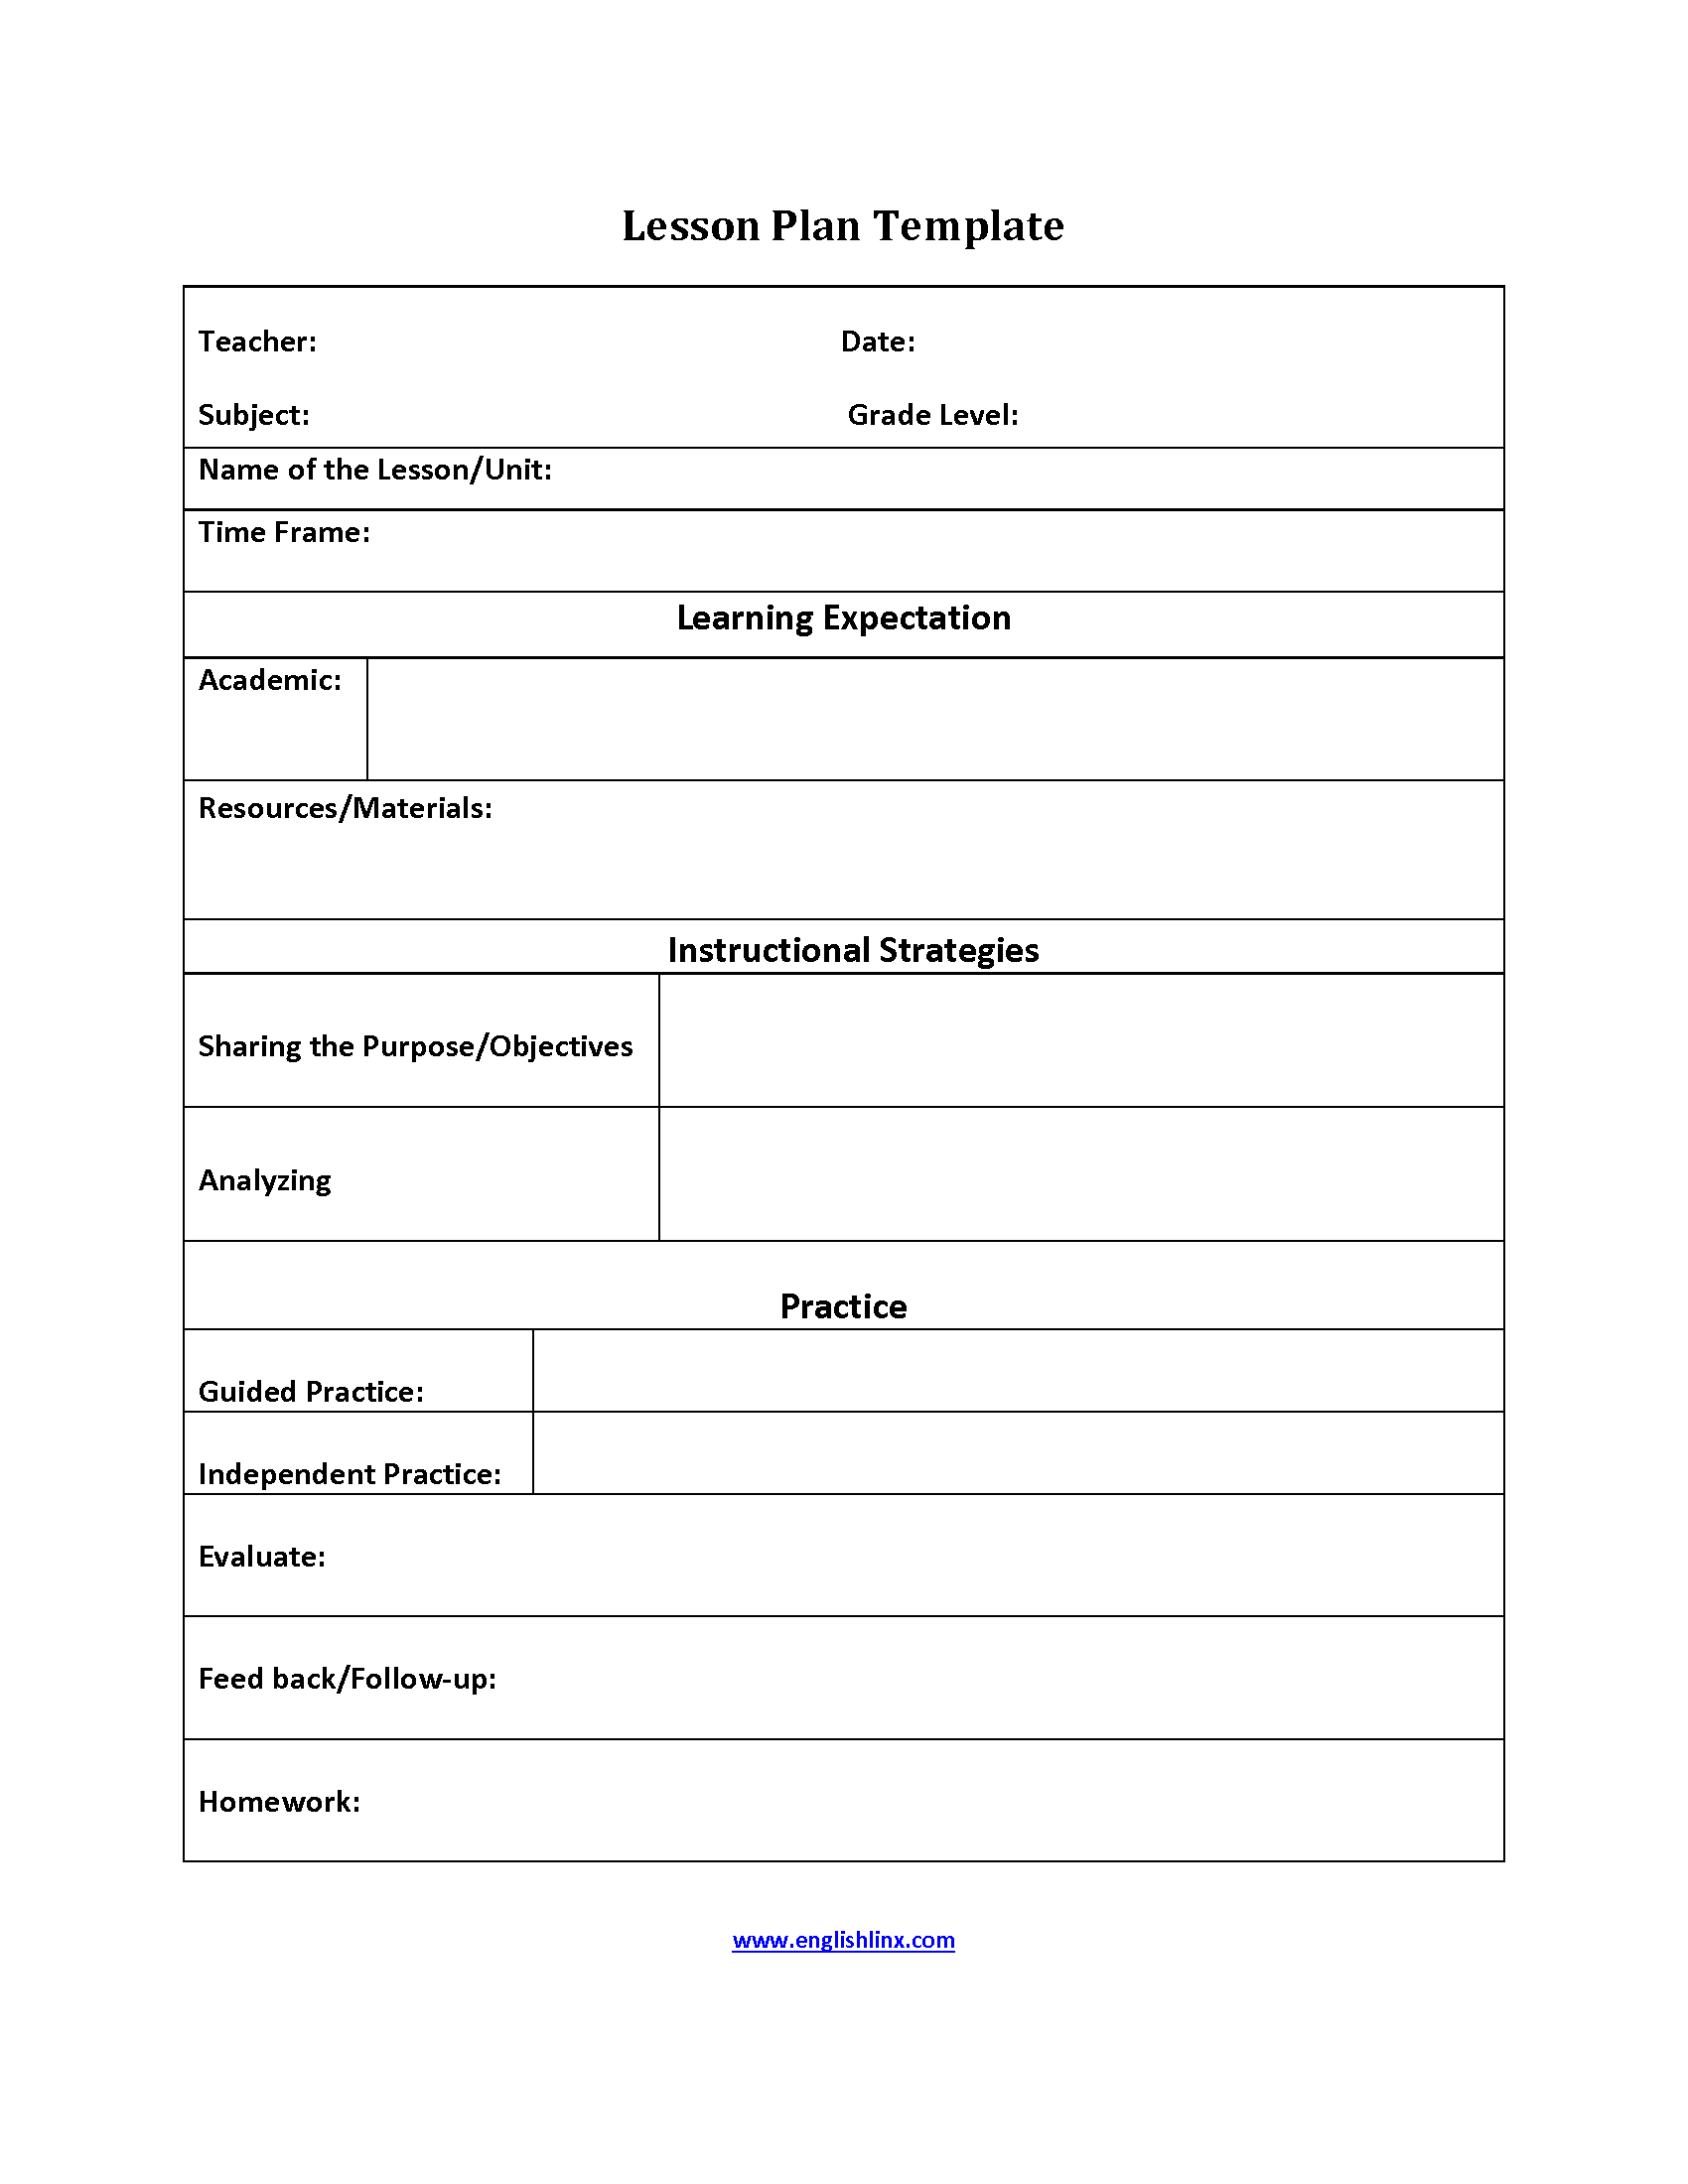 Feedback Lesson Plan Template